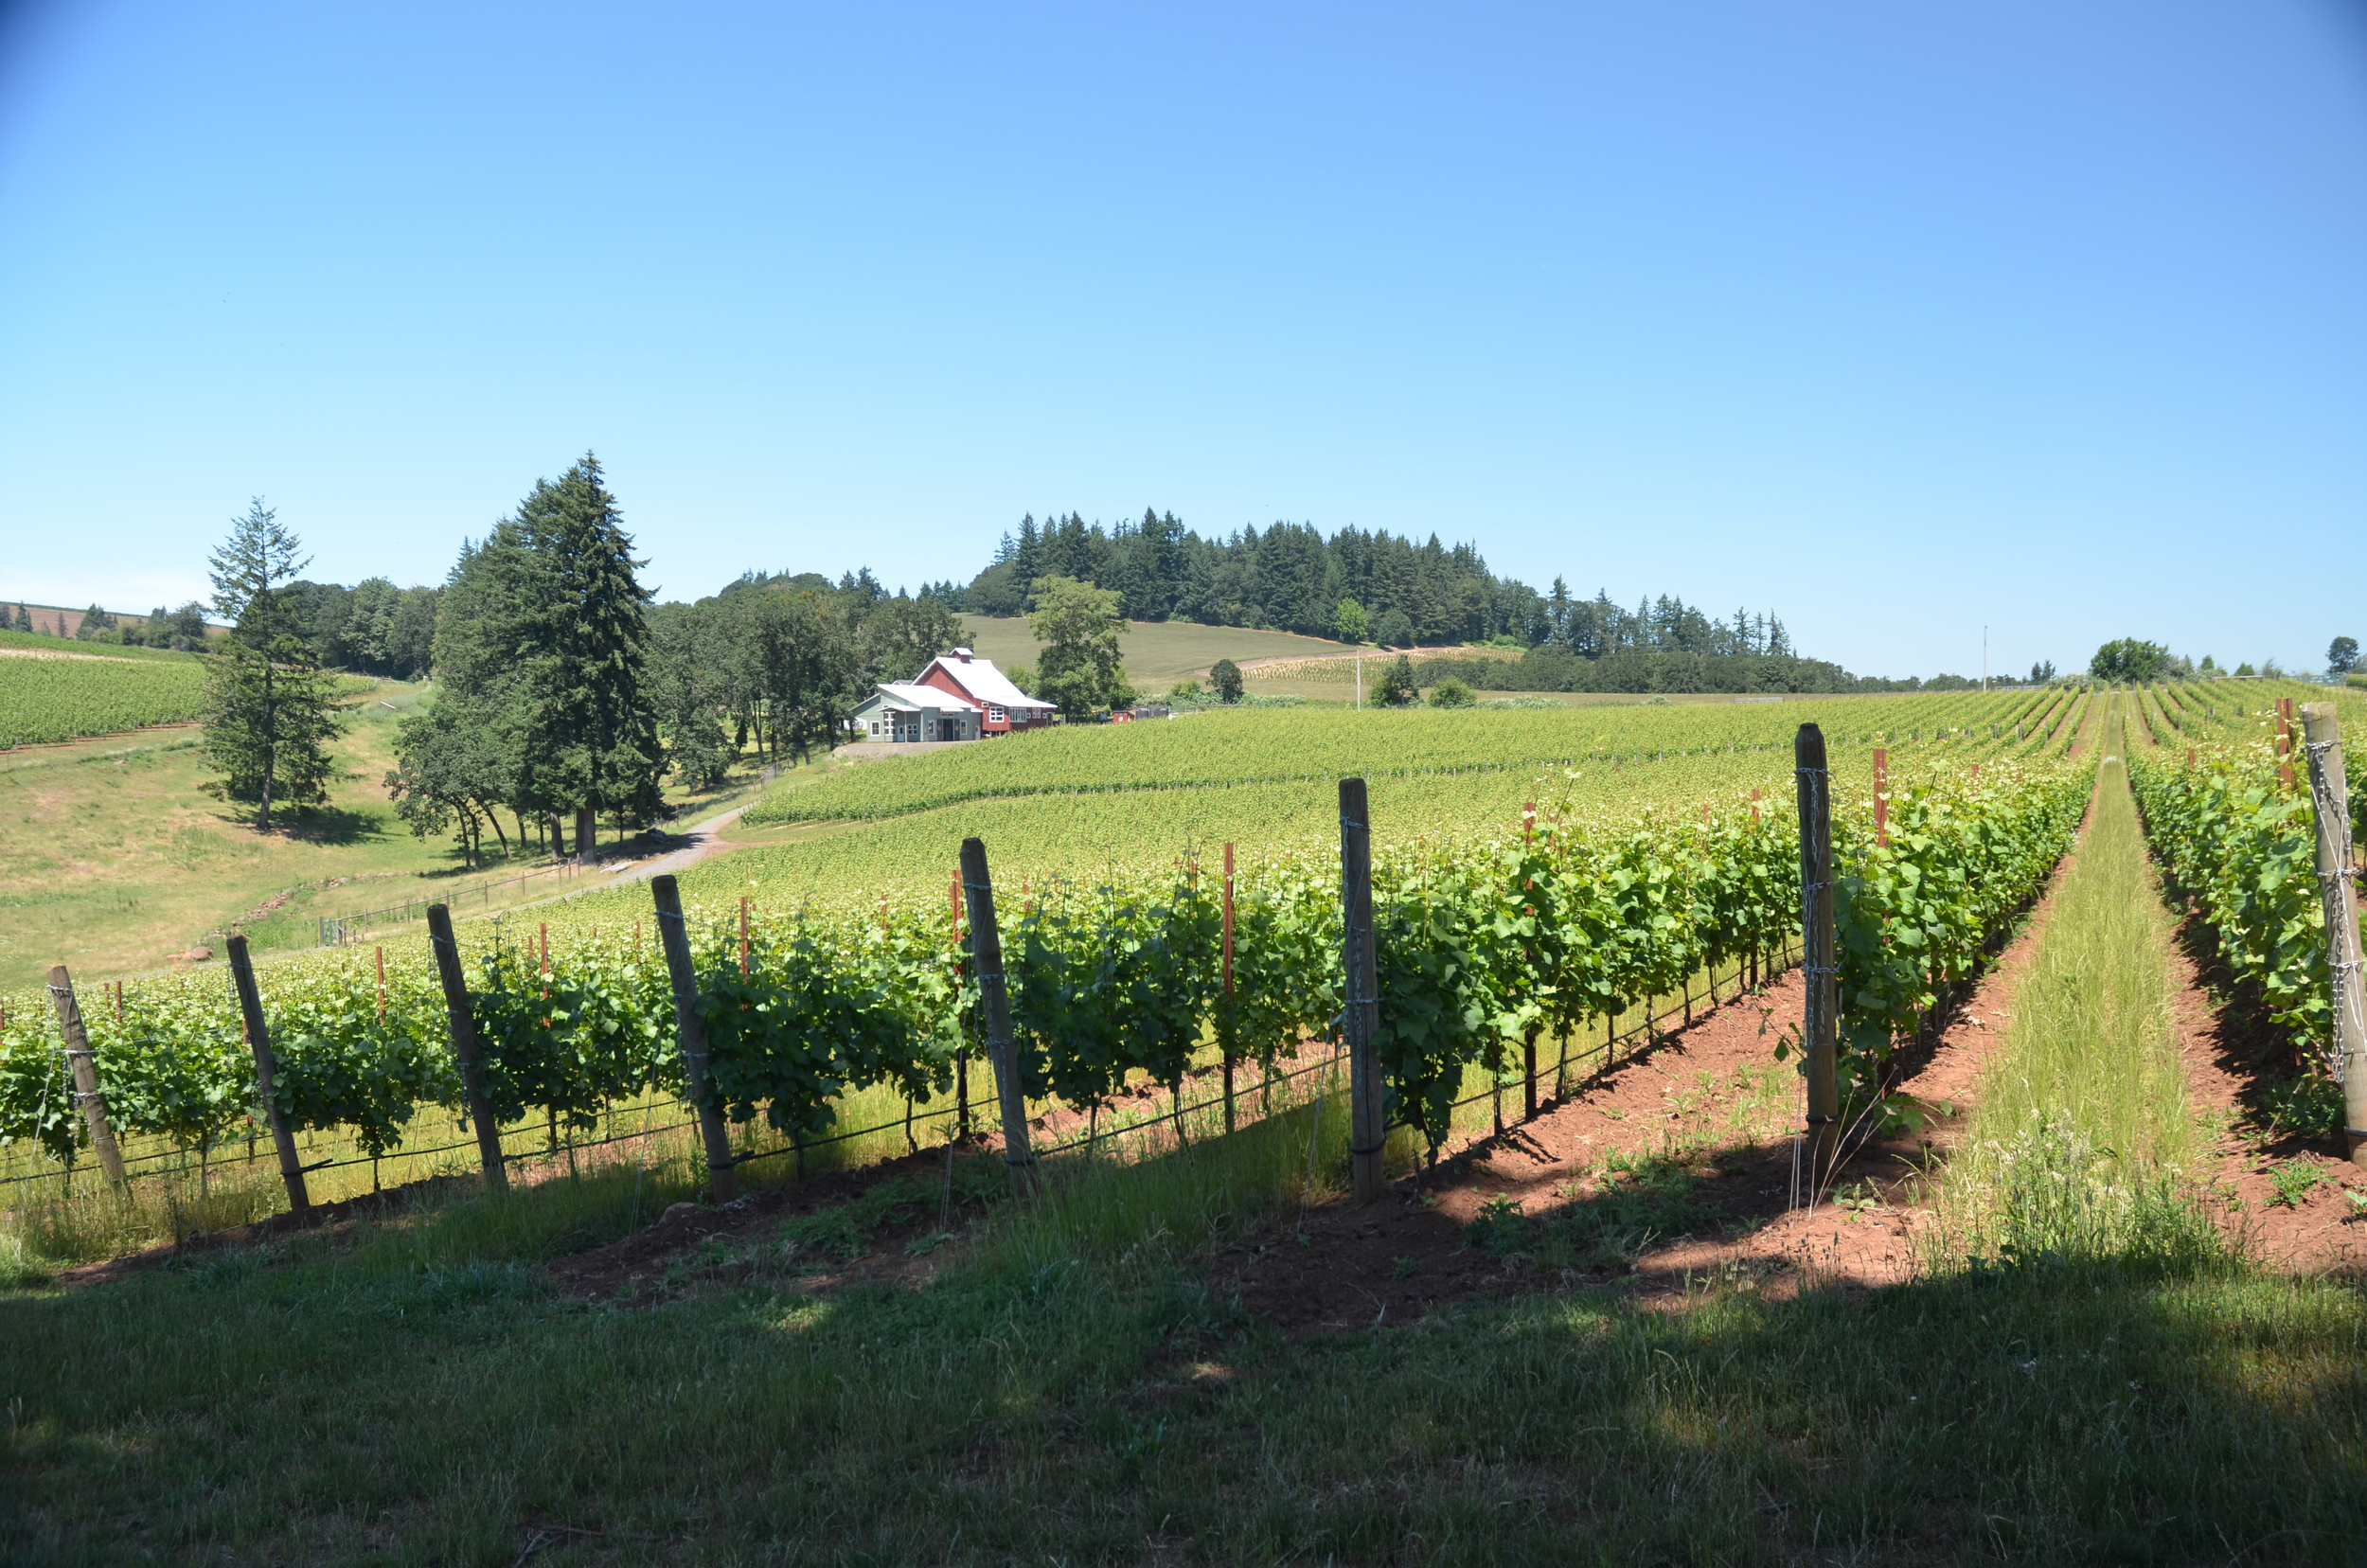 Bieze vineyard is one of the featured vineyards in the 2015 Ponzi Classico Pinot Noir